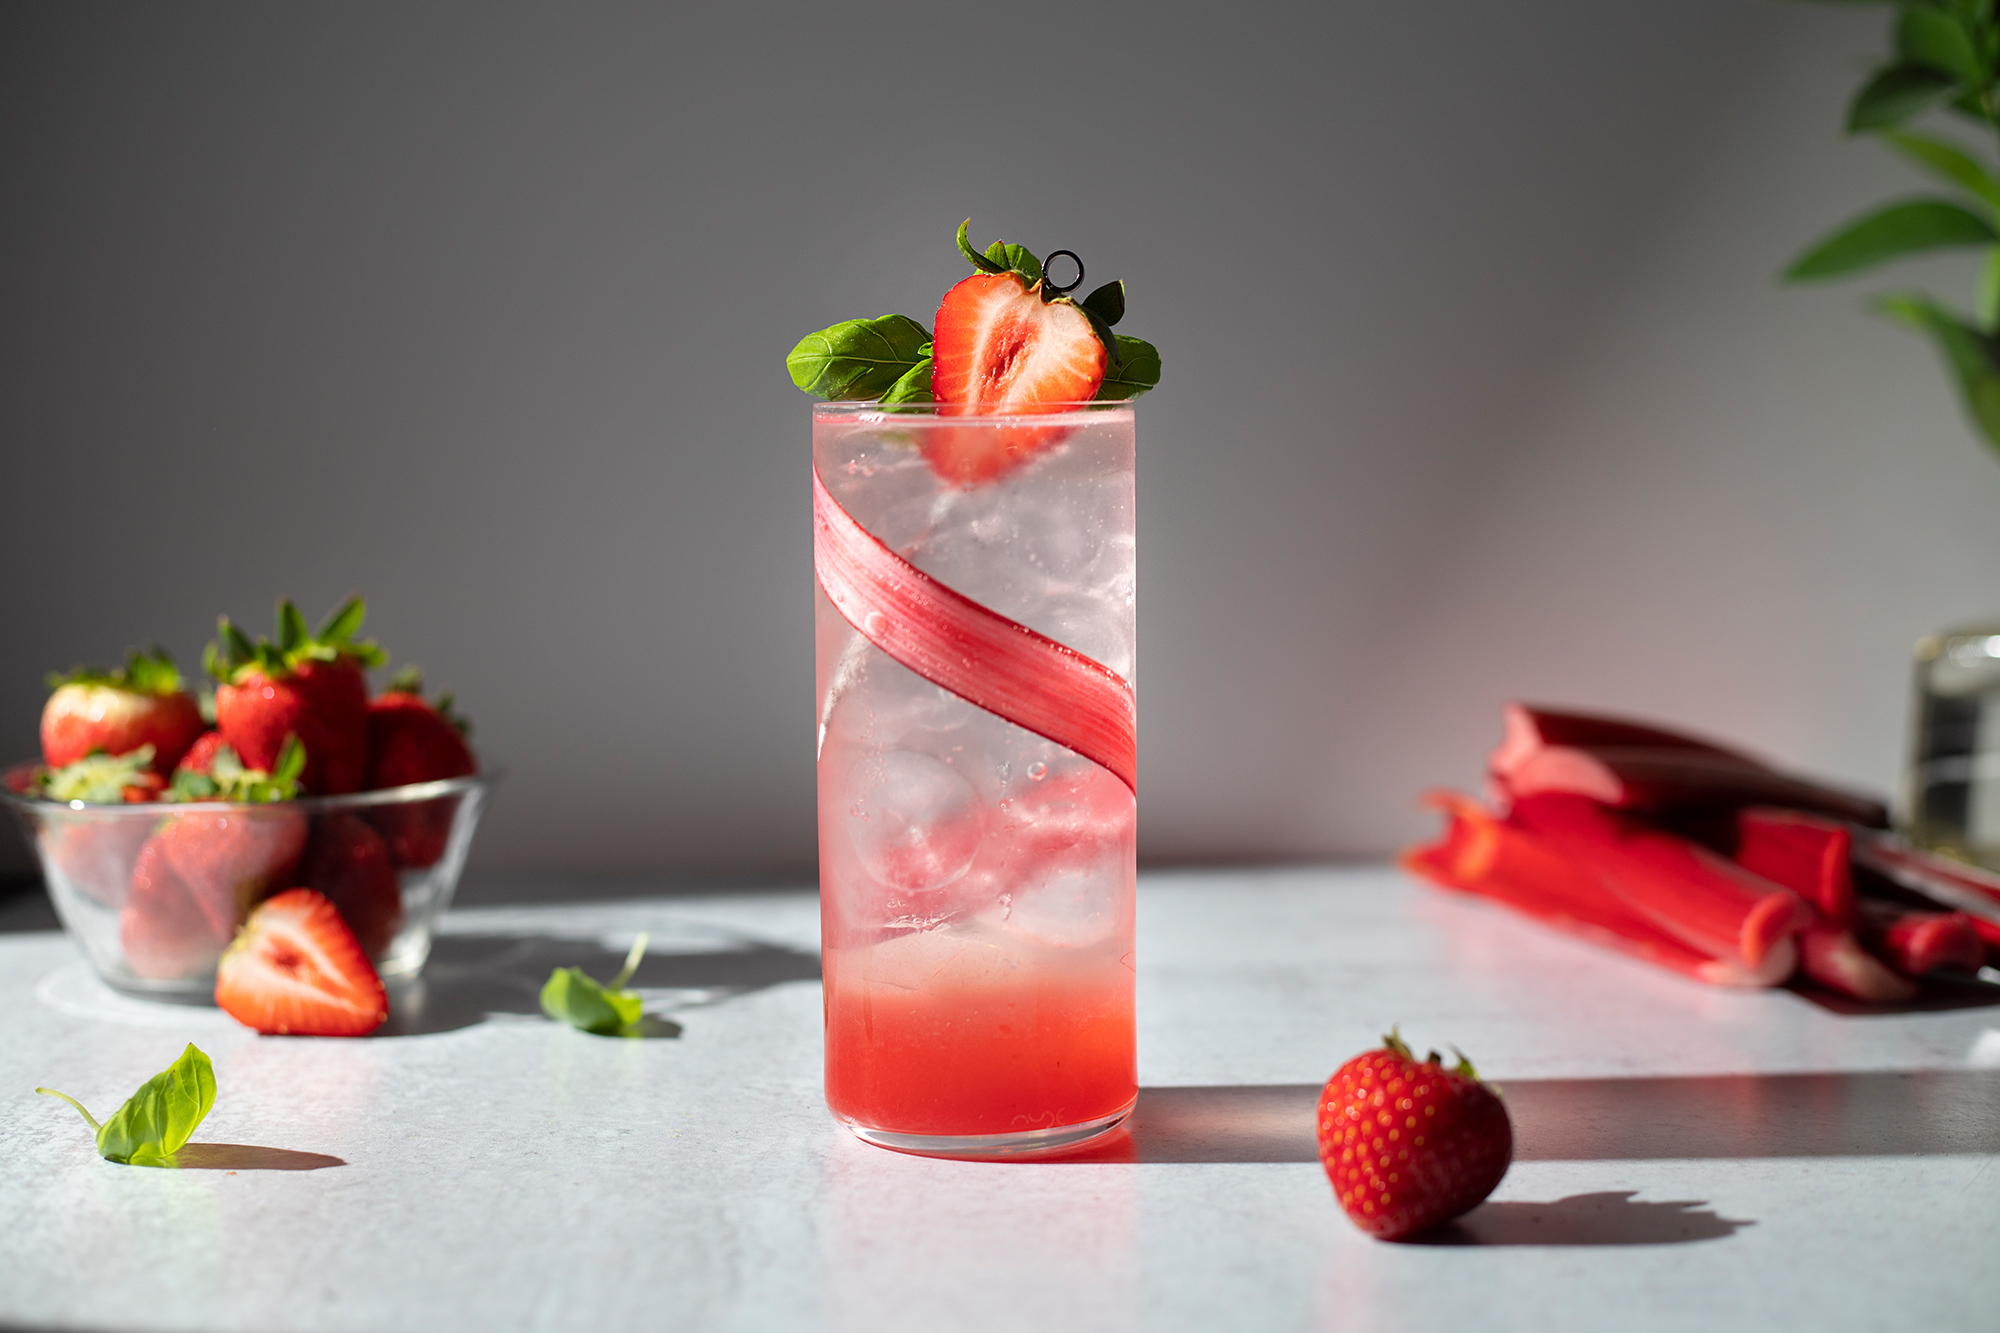 Strawberry-Rhubarb Shrub Cocktail